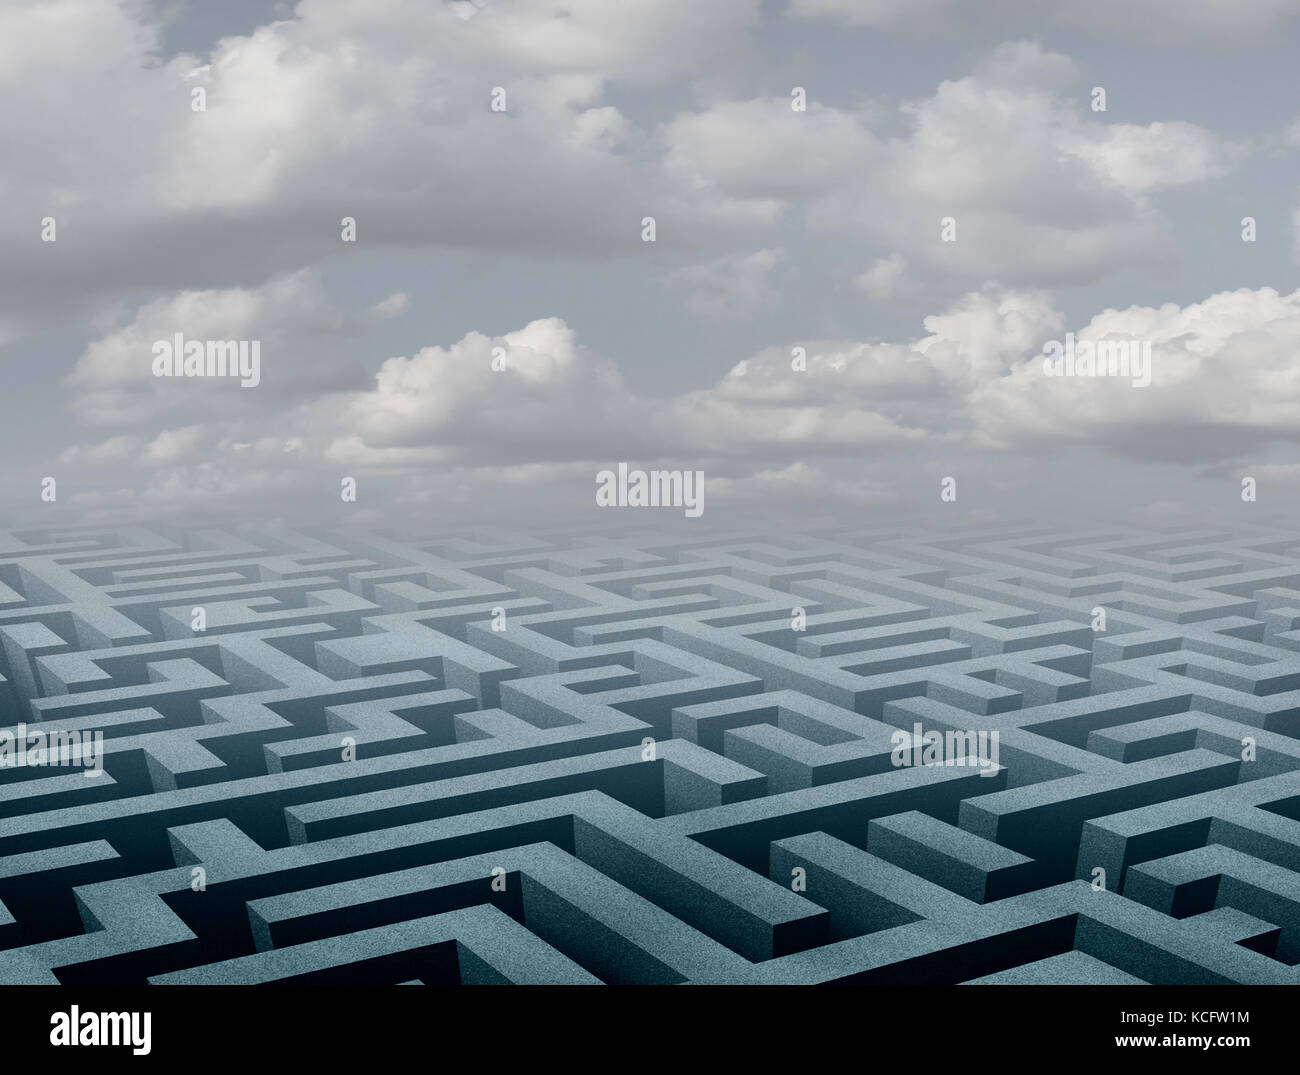 Labyrinth background and abstract maze perspective scene as a 3D illustration. - Stock Image